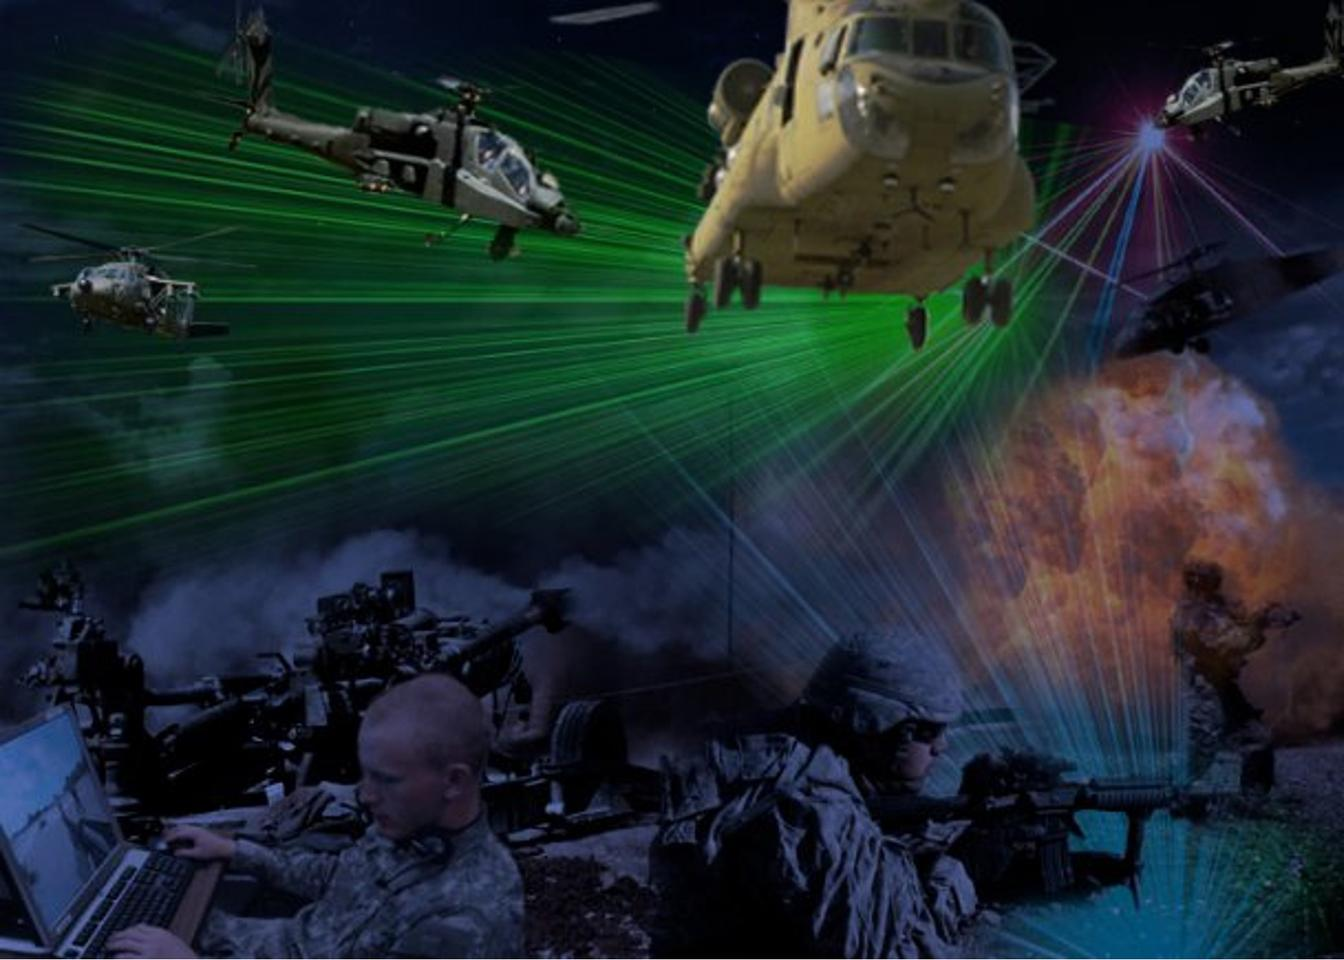 Artist's impression of the live synthetic simulation system (image: US Army/Peggy Frierson)